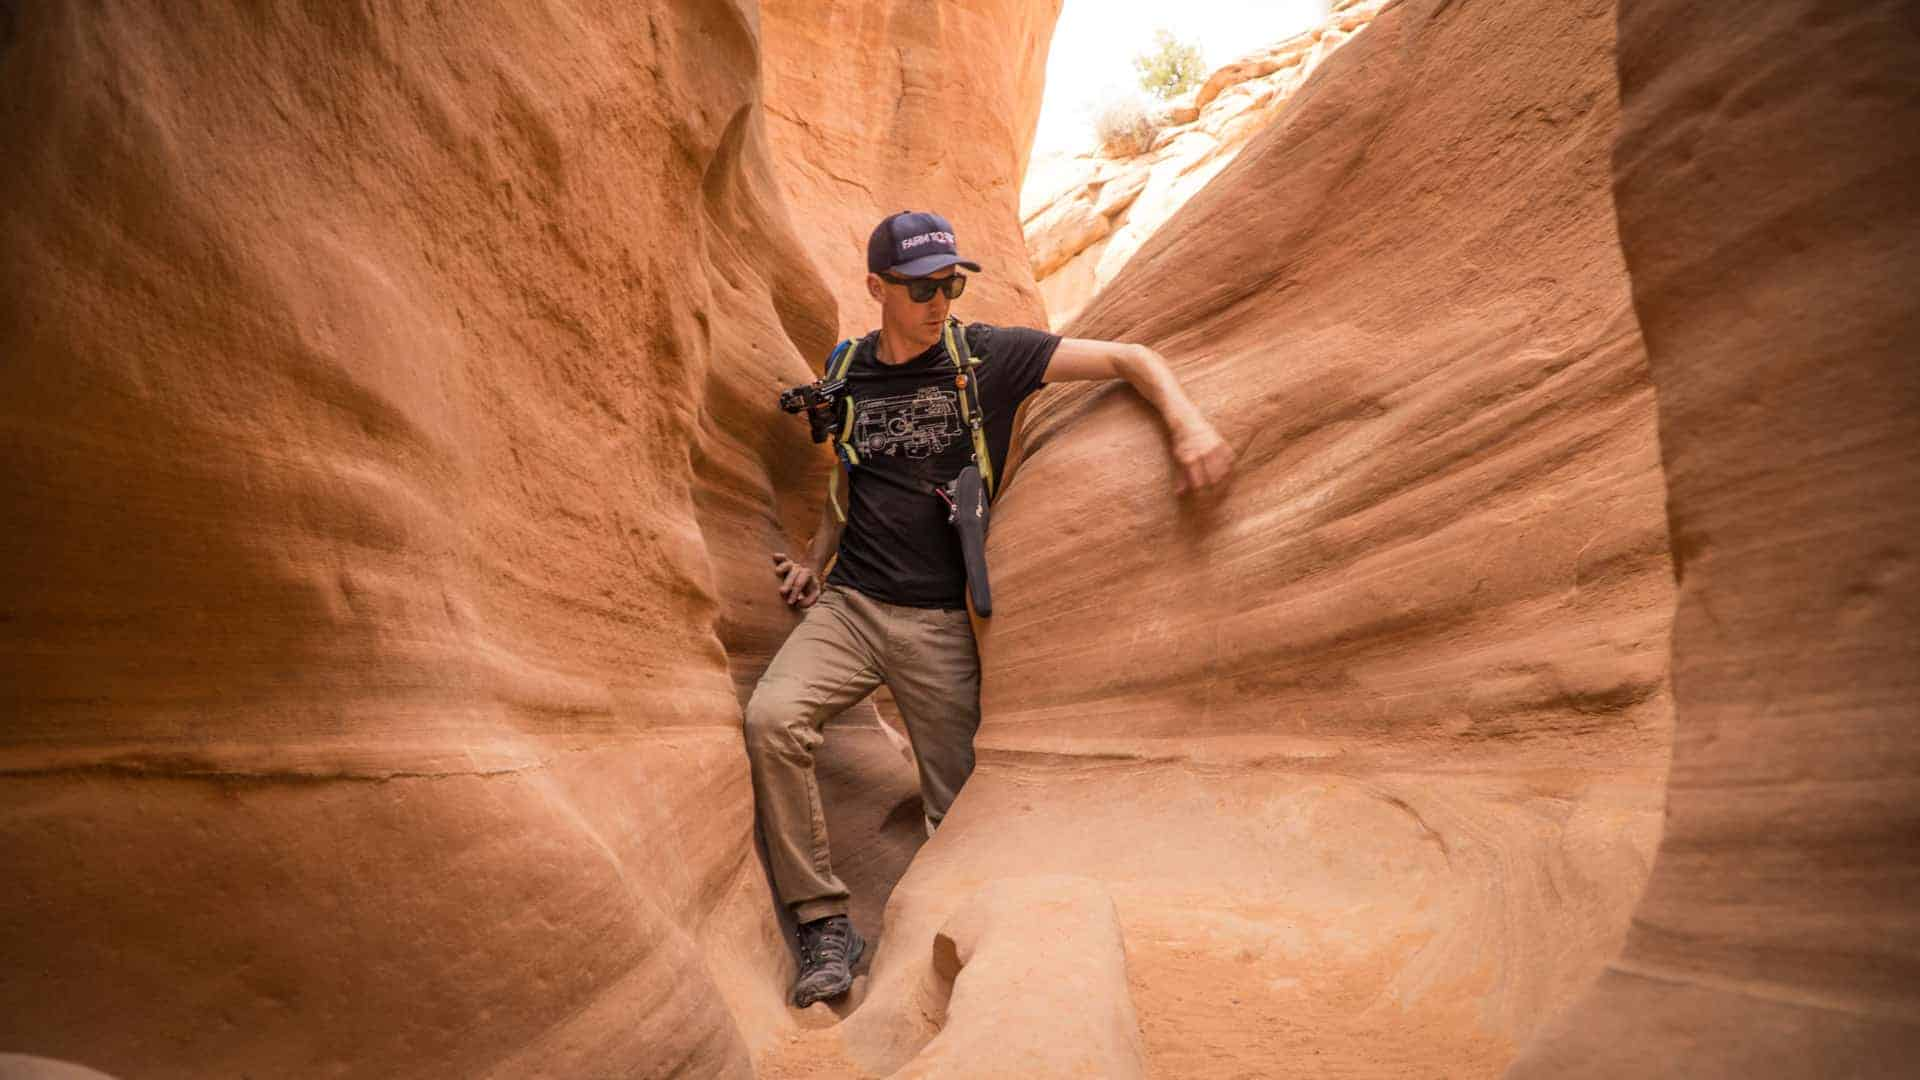 Peek-a-Boo and Spooky Slot Canyons